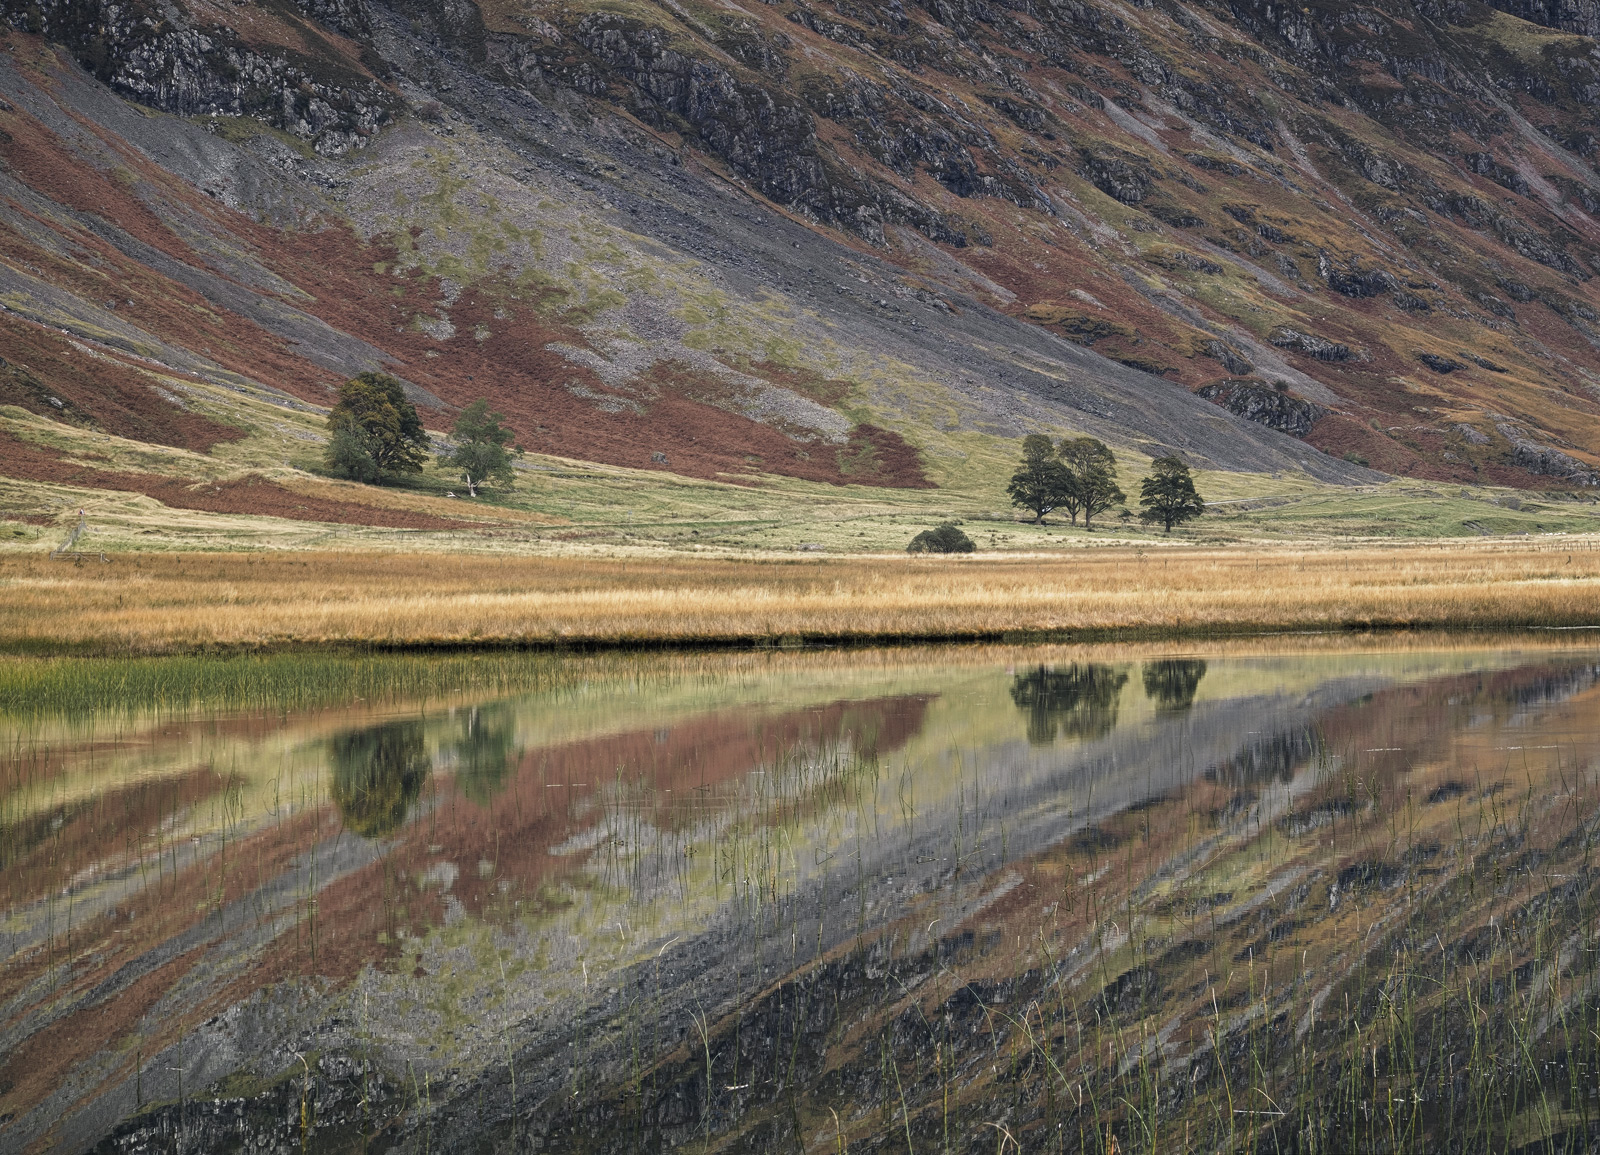 On the rare occasions that the air is still down the length of this mountainous glen, Loch Achtiochtan can produce the most astounding...